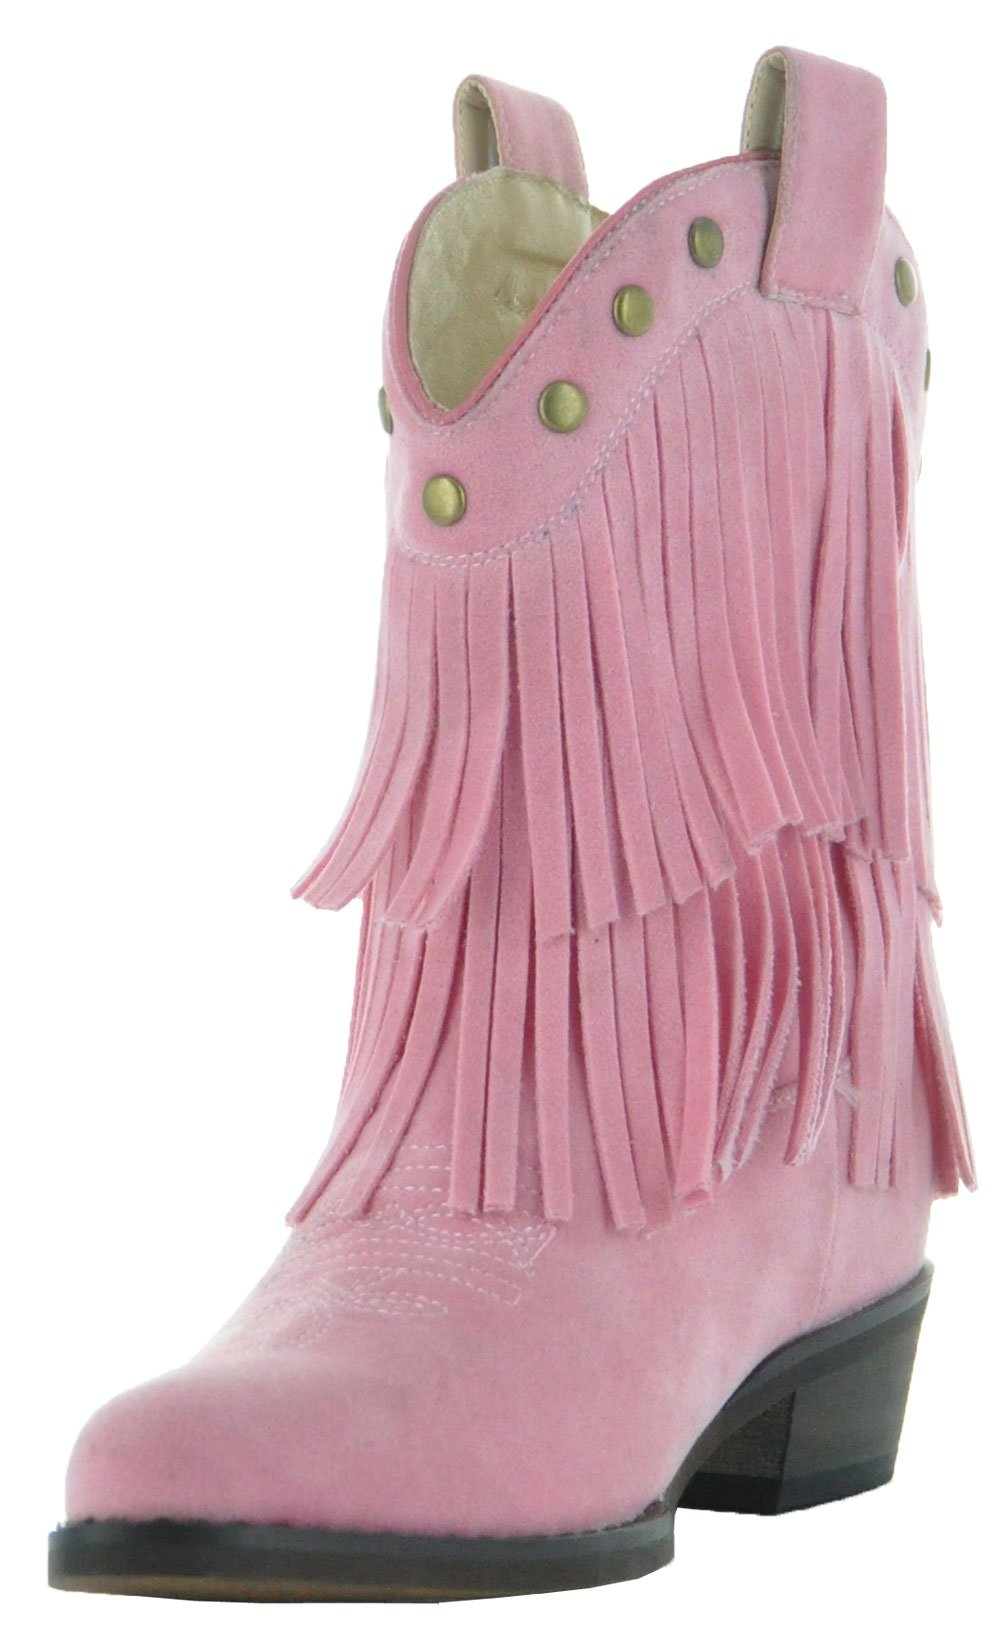 Little Kids Fun Fringe Brown Cowgirl Boots by Country Love Boots (11.5 Little Kid, Pink) by Country Love Boots (Image #5)